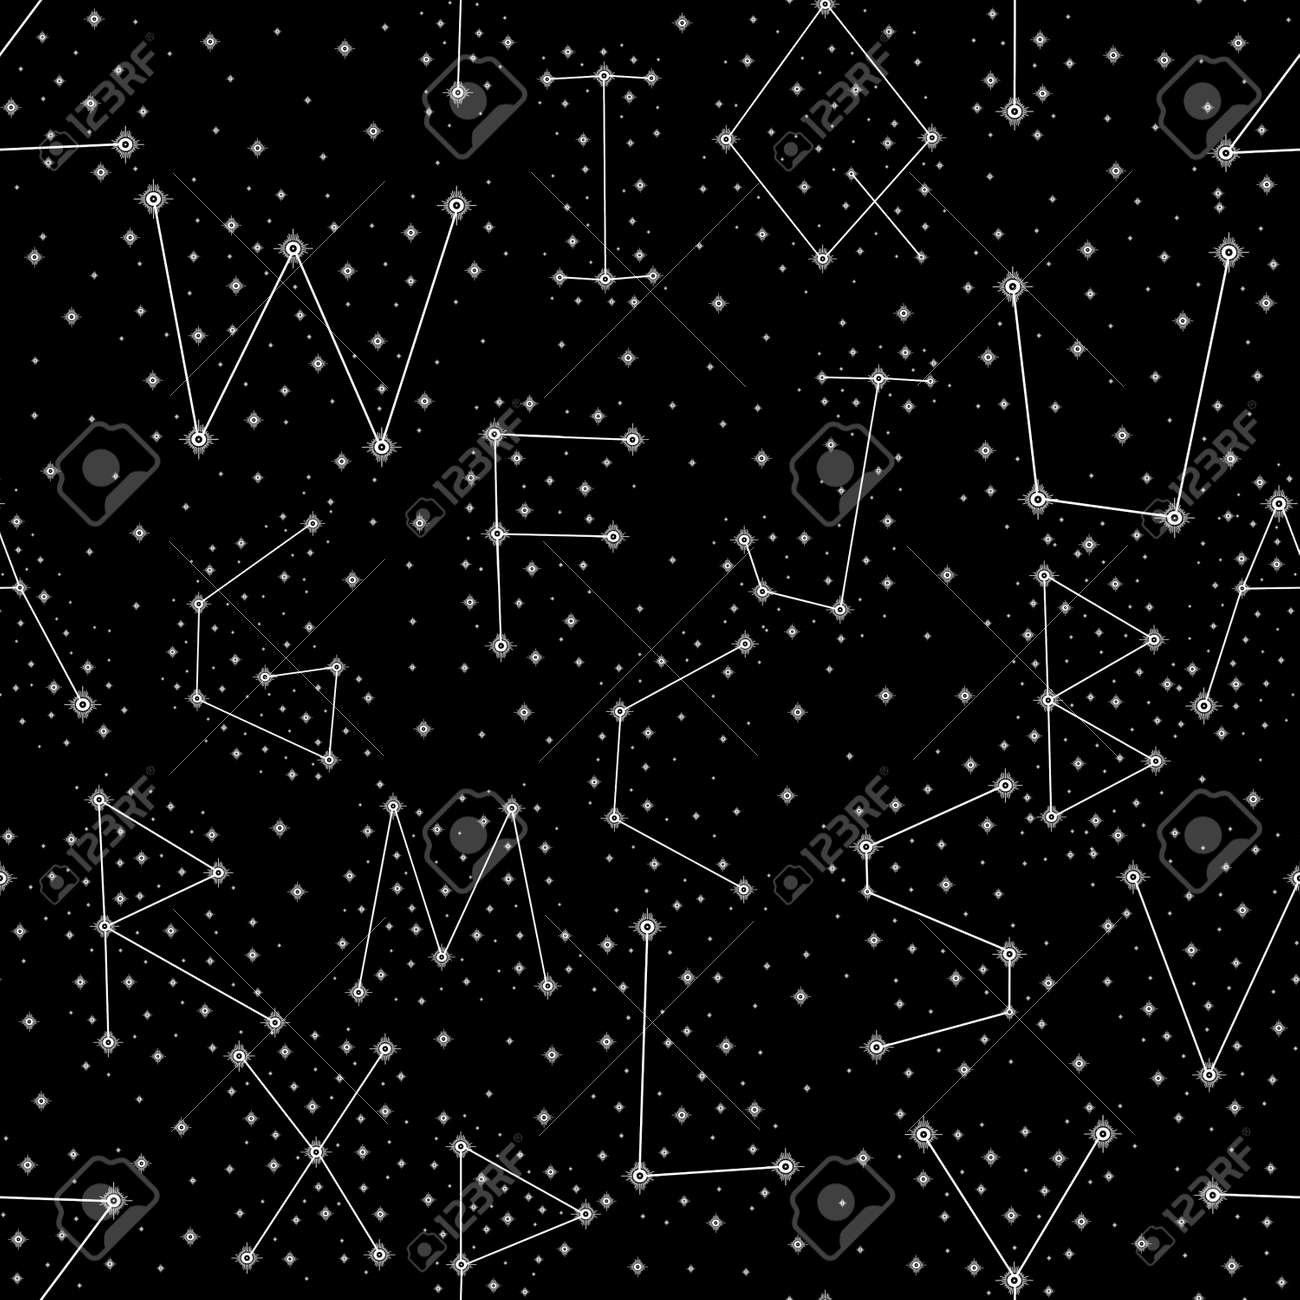 Seamless pattern alphabet constellations abstract symbol space.Astrology background doodle style. - 170424871